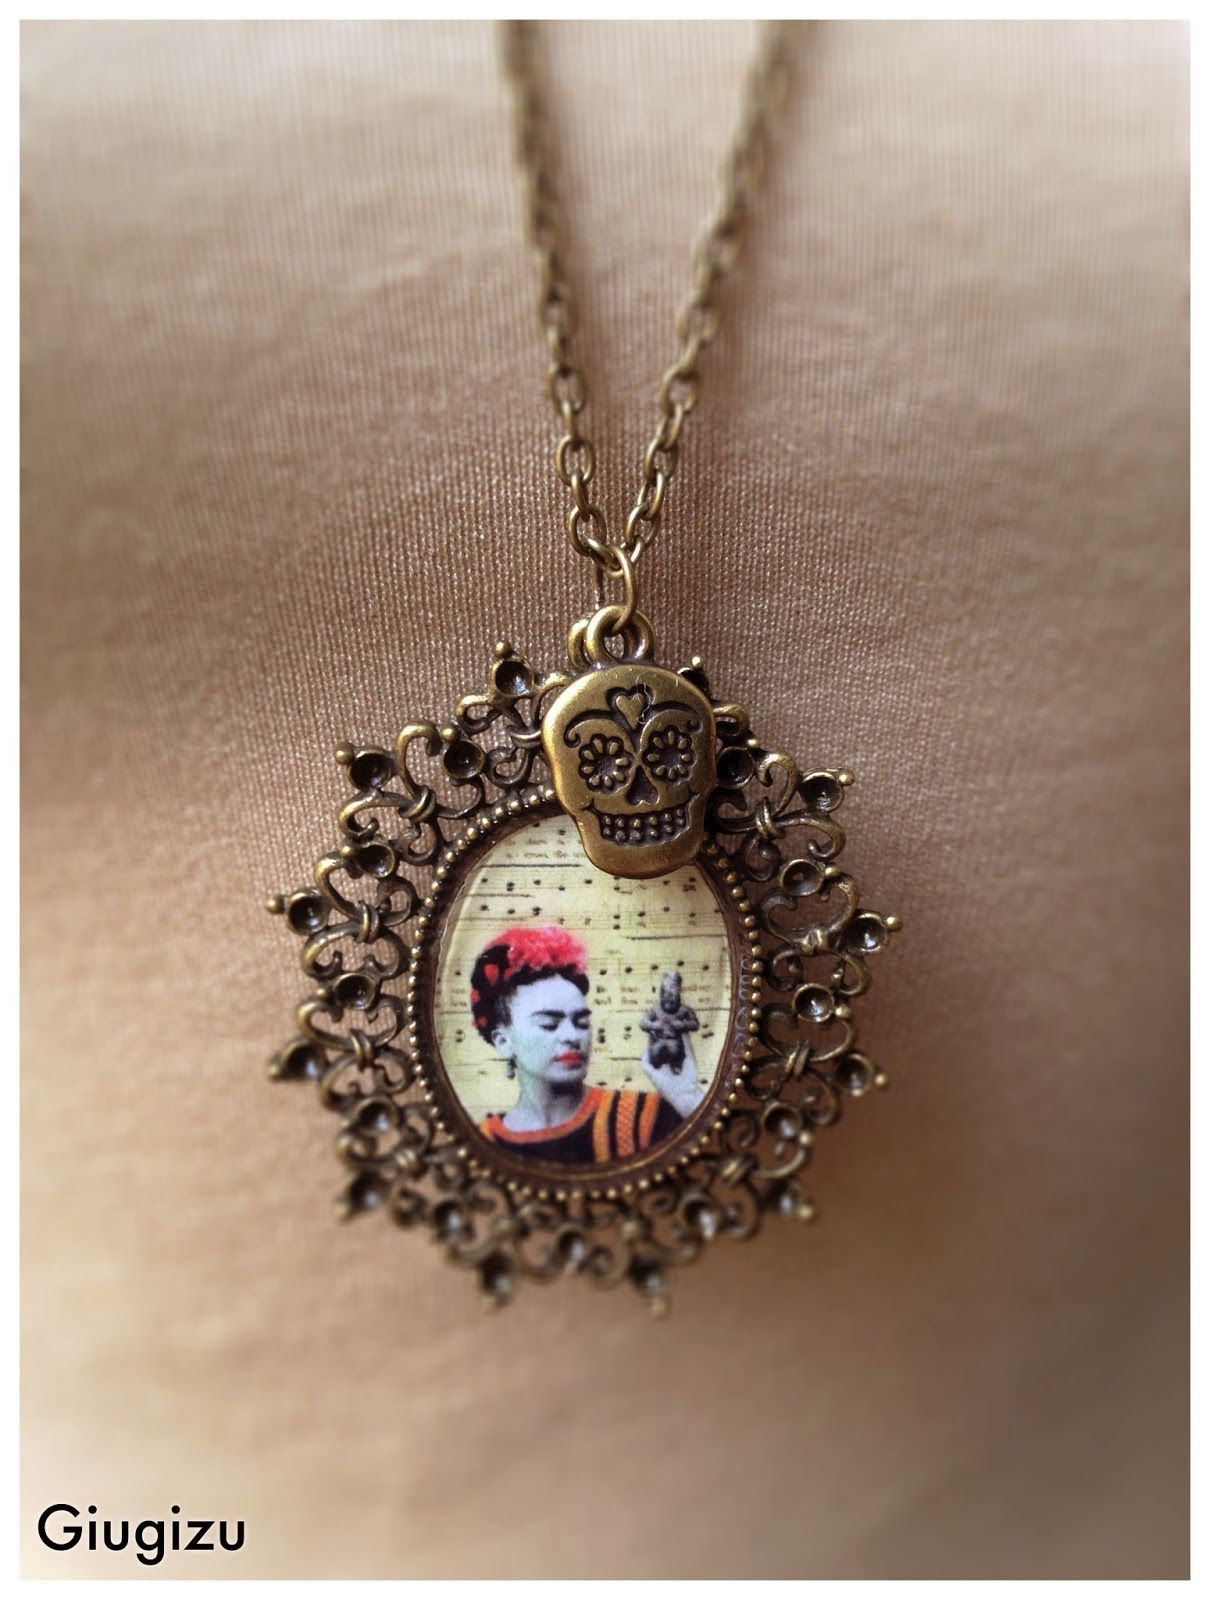 #FridaKahlo #Alteredart #handmade #Jewelry. Check my blog to see the whole set http://giugizu.blogspot.it/2015/04/frida-kahlo-altered-art-accessories.html